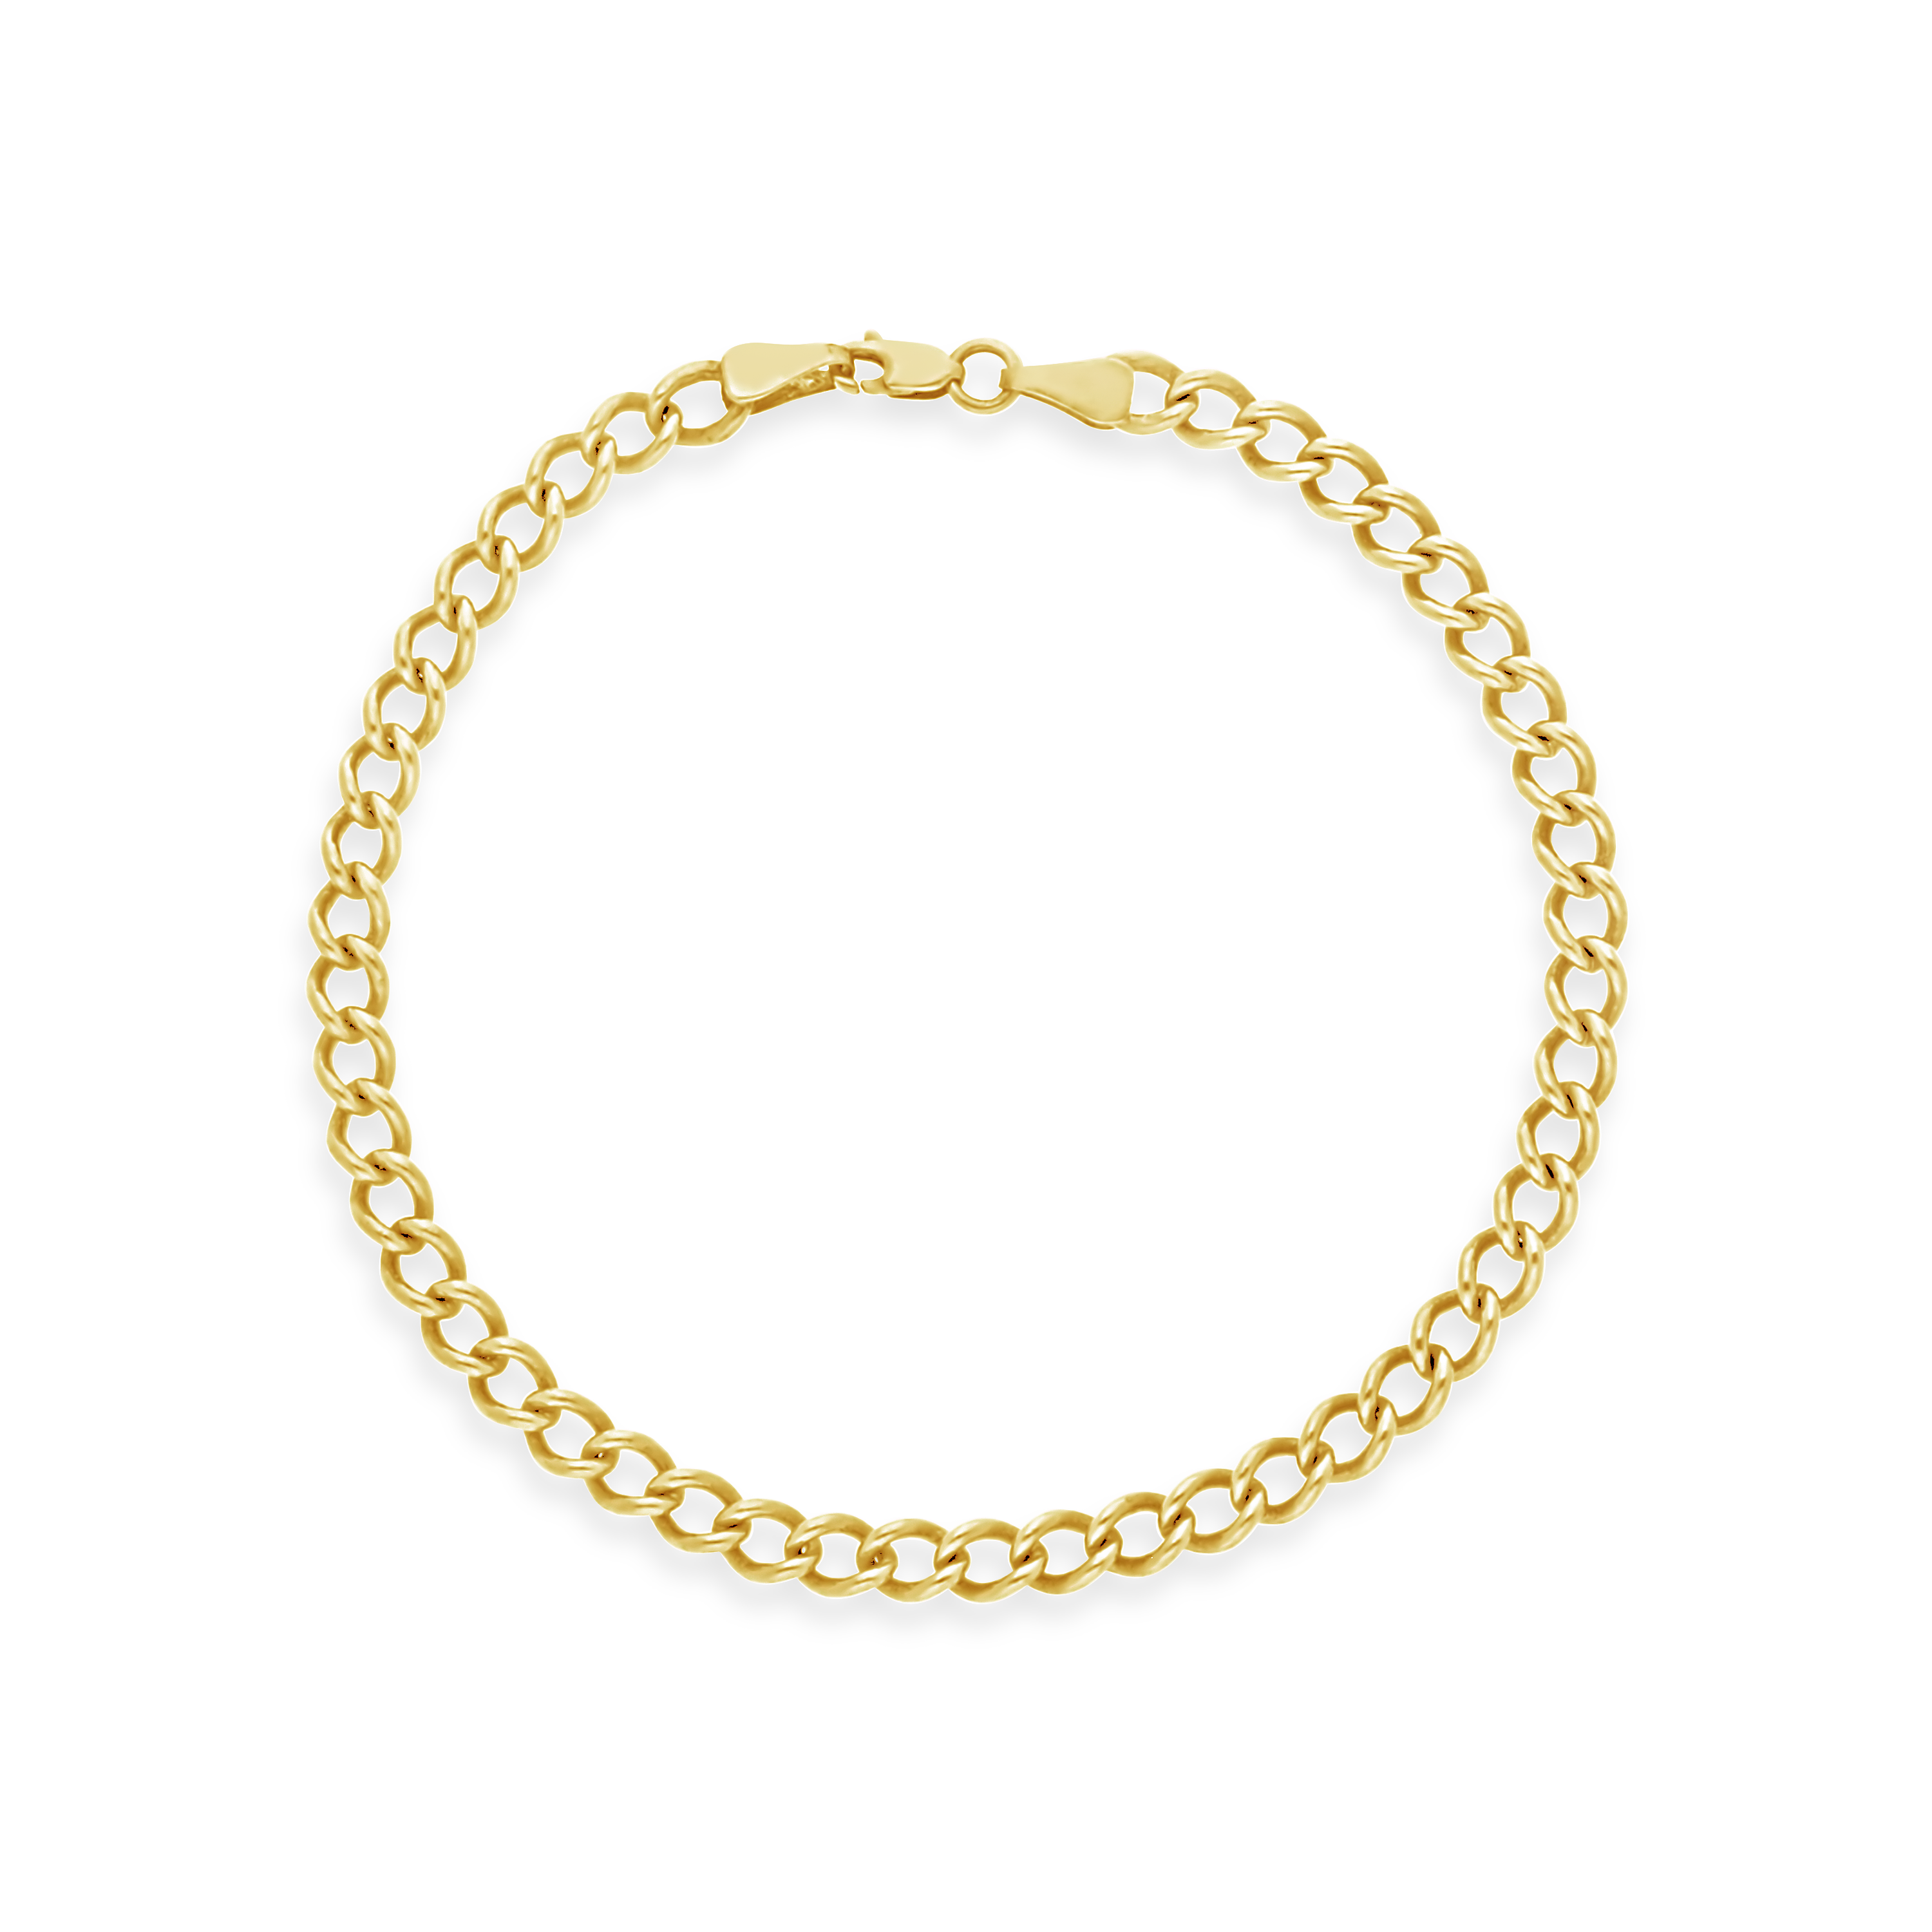 612fc4e8d096 9ct Gold 19cm Bracelet for Charms - NWJ